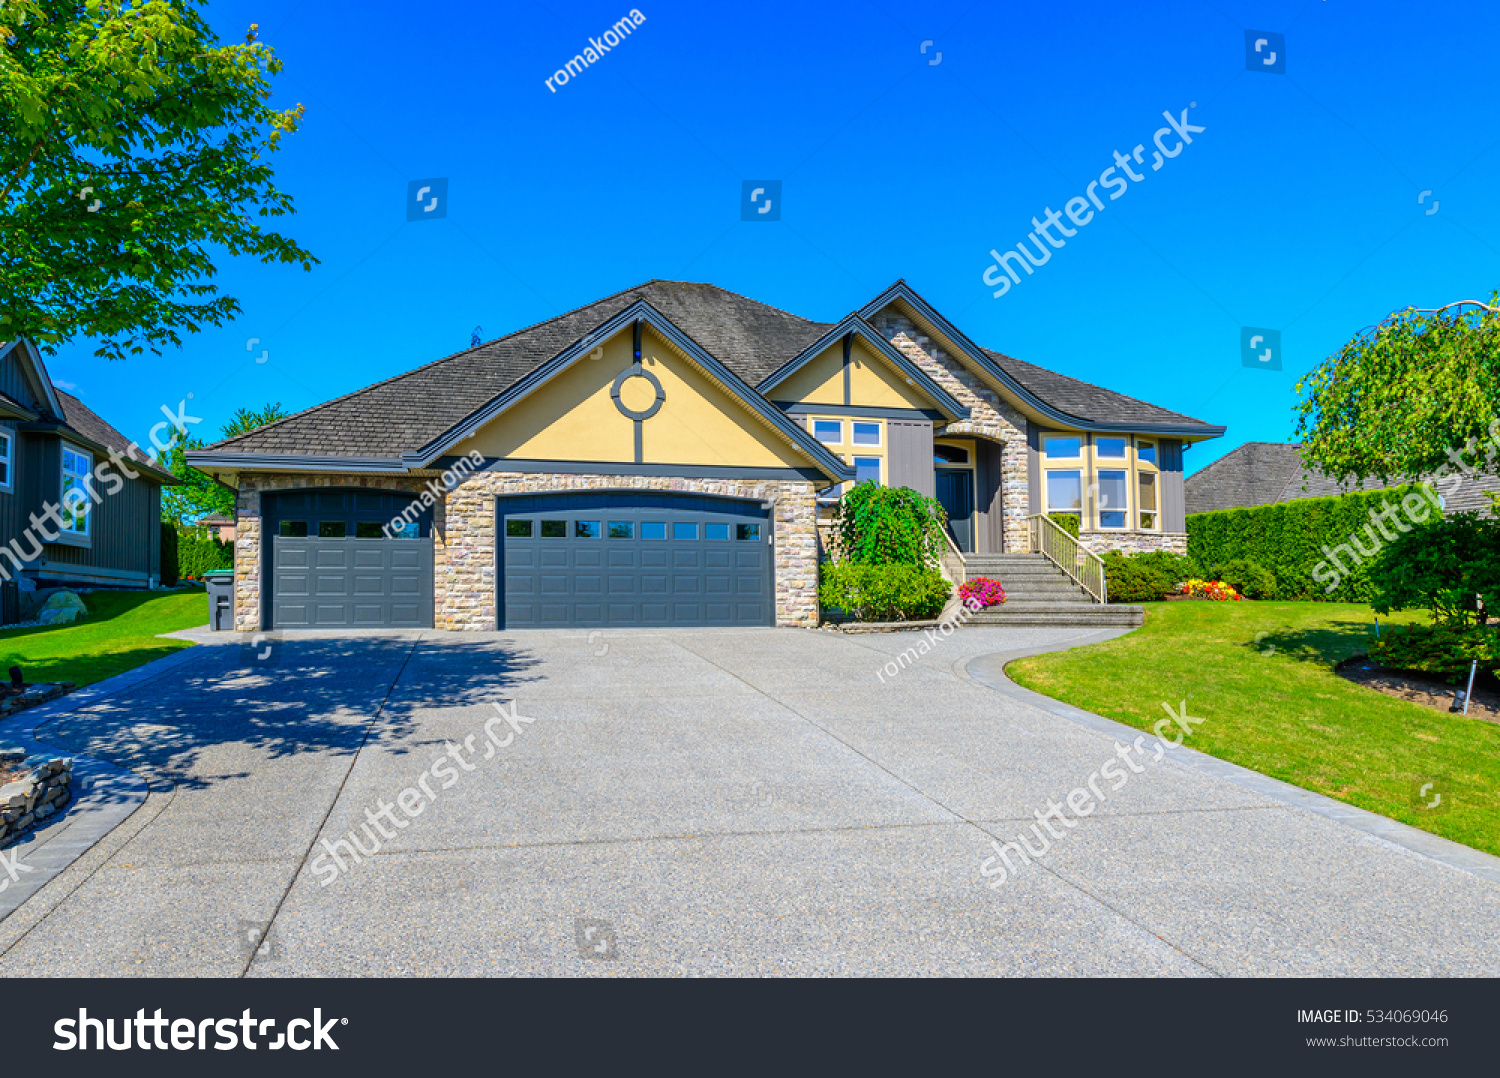 Big custom made luxury house nicely stock photo 534069046 for Garage in front of house